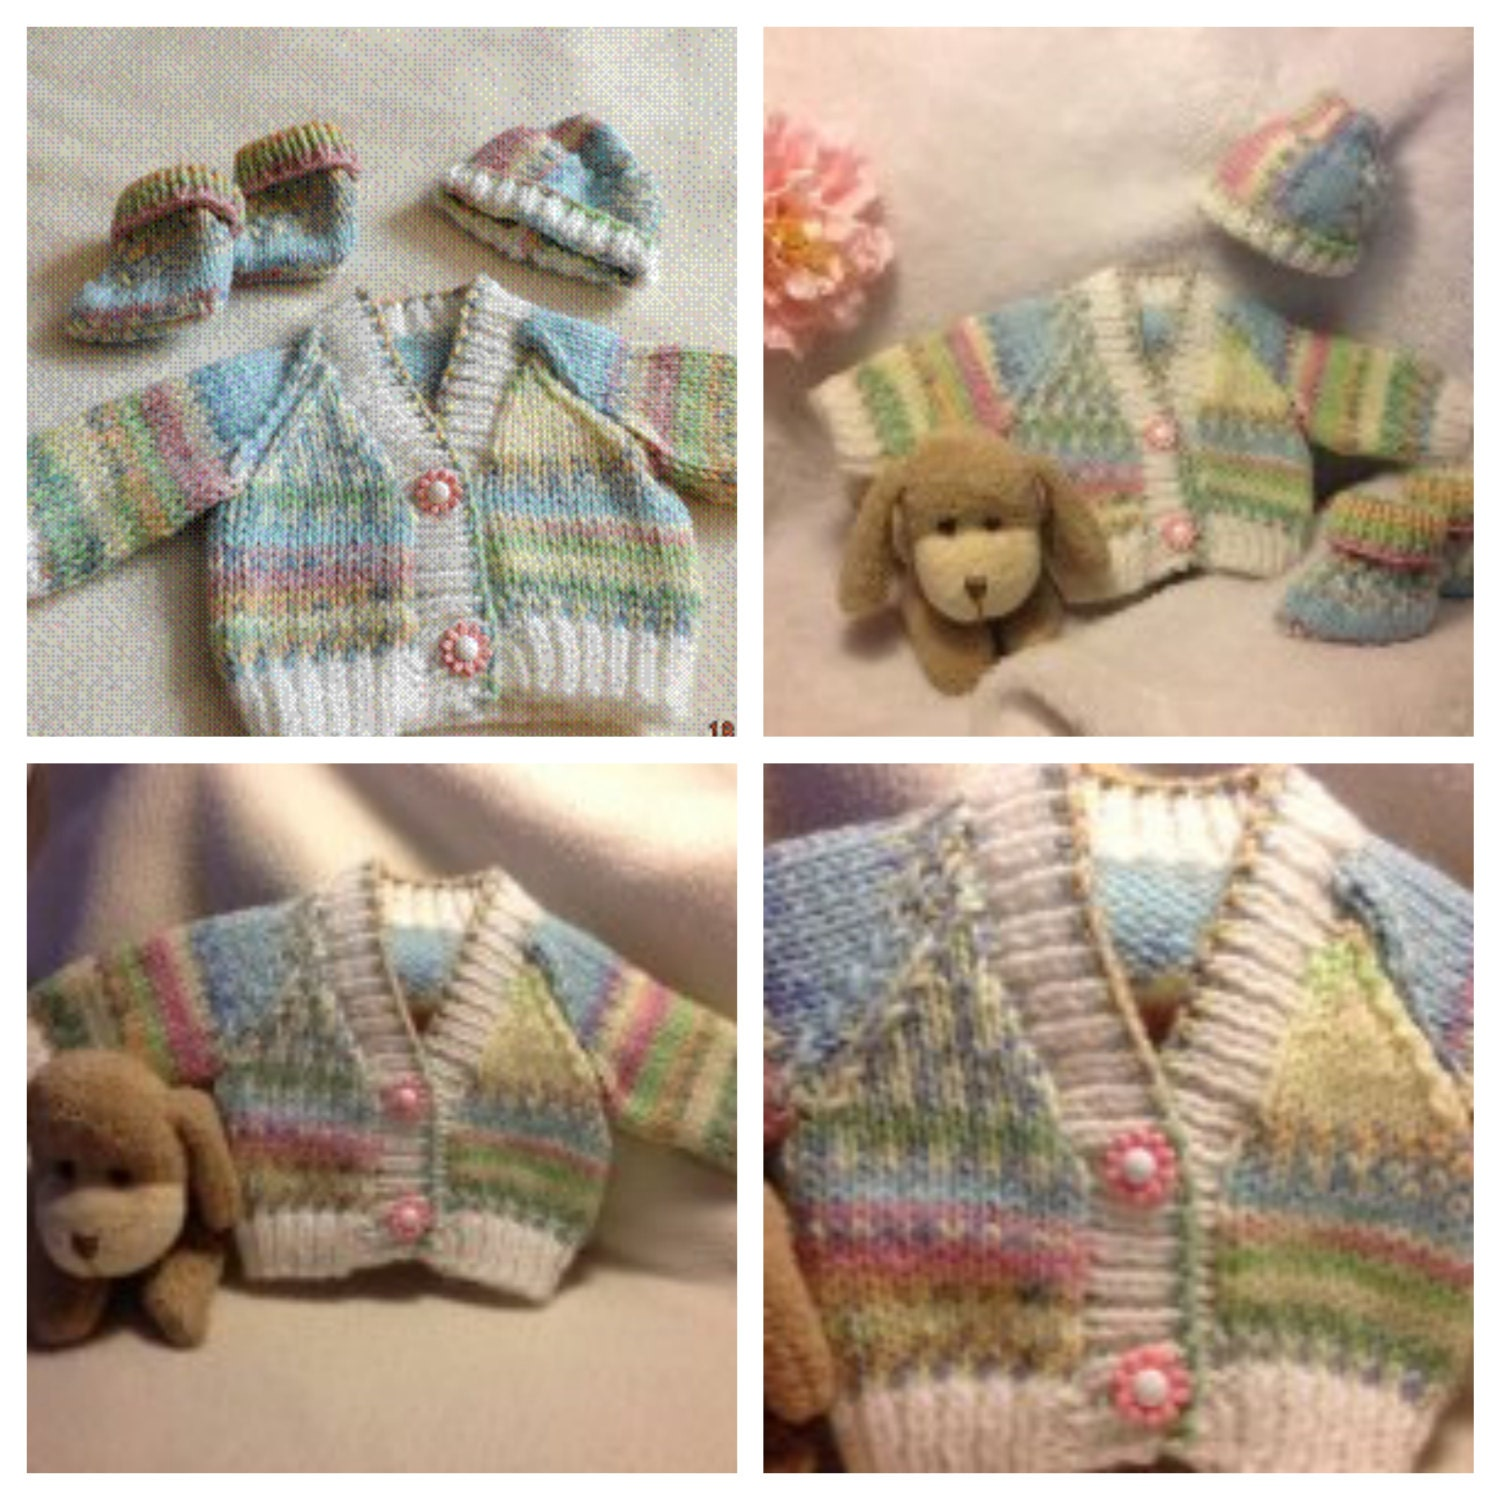 Premature Baby Gifts Uk : Baby gift knitting pattern knit for premature shower pdf